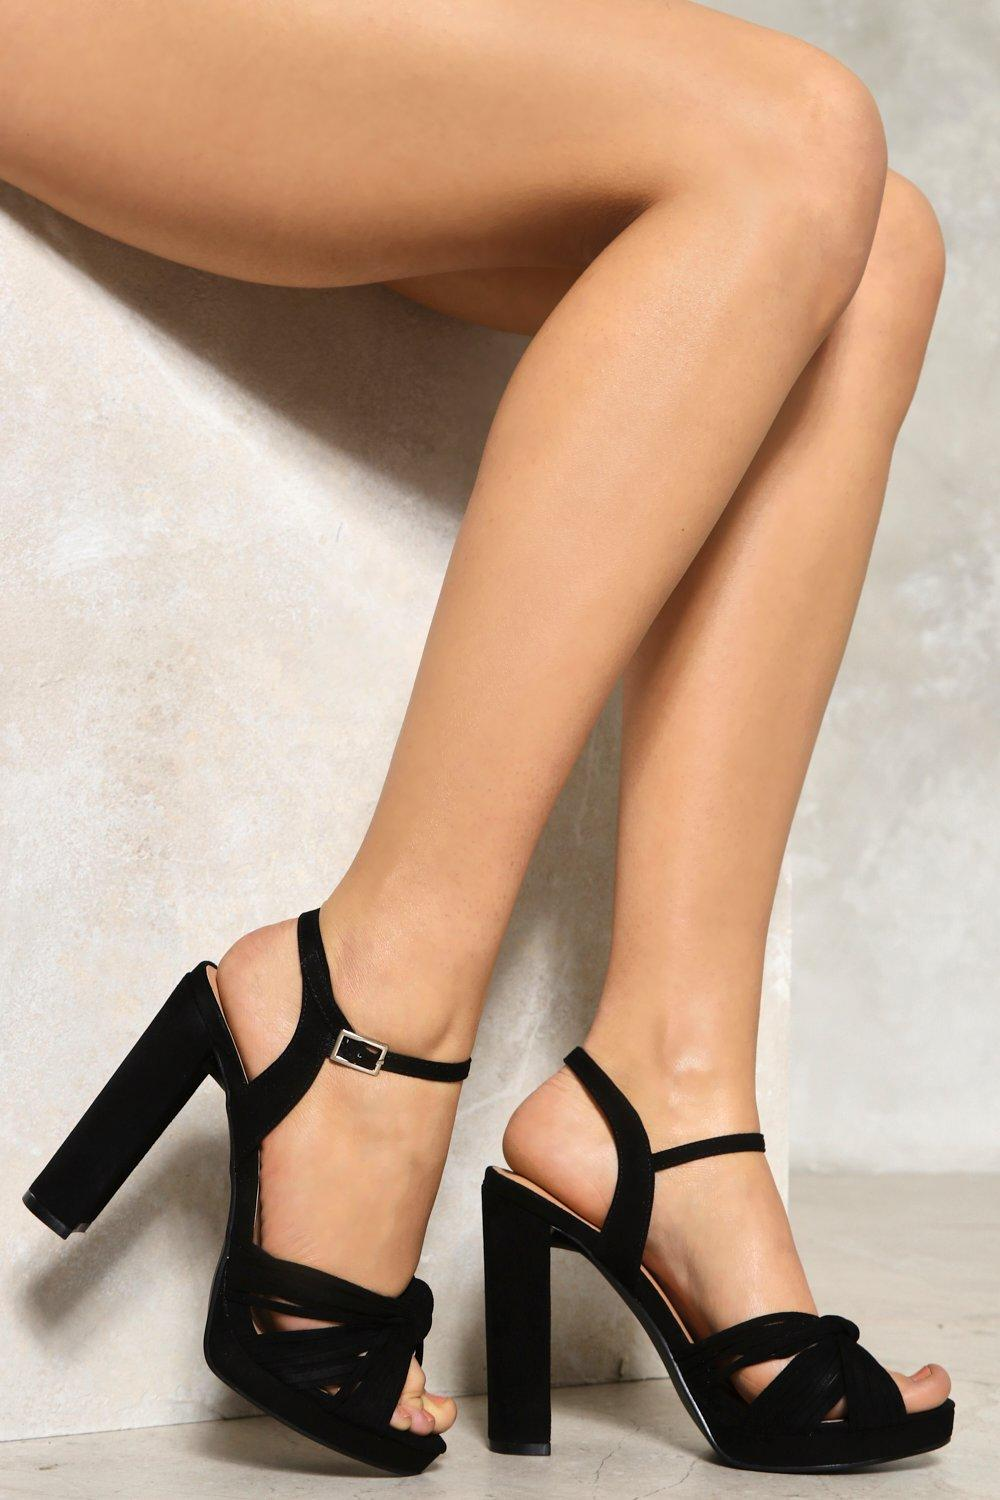 8ad26f209ad Knot Your Girl Platform Heel | Shop Clothes at Nasty Gal!